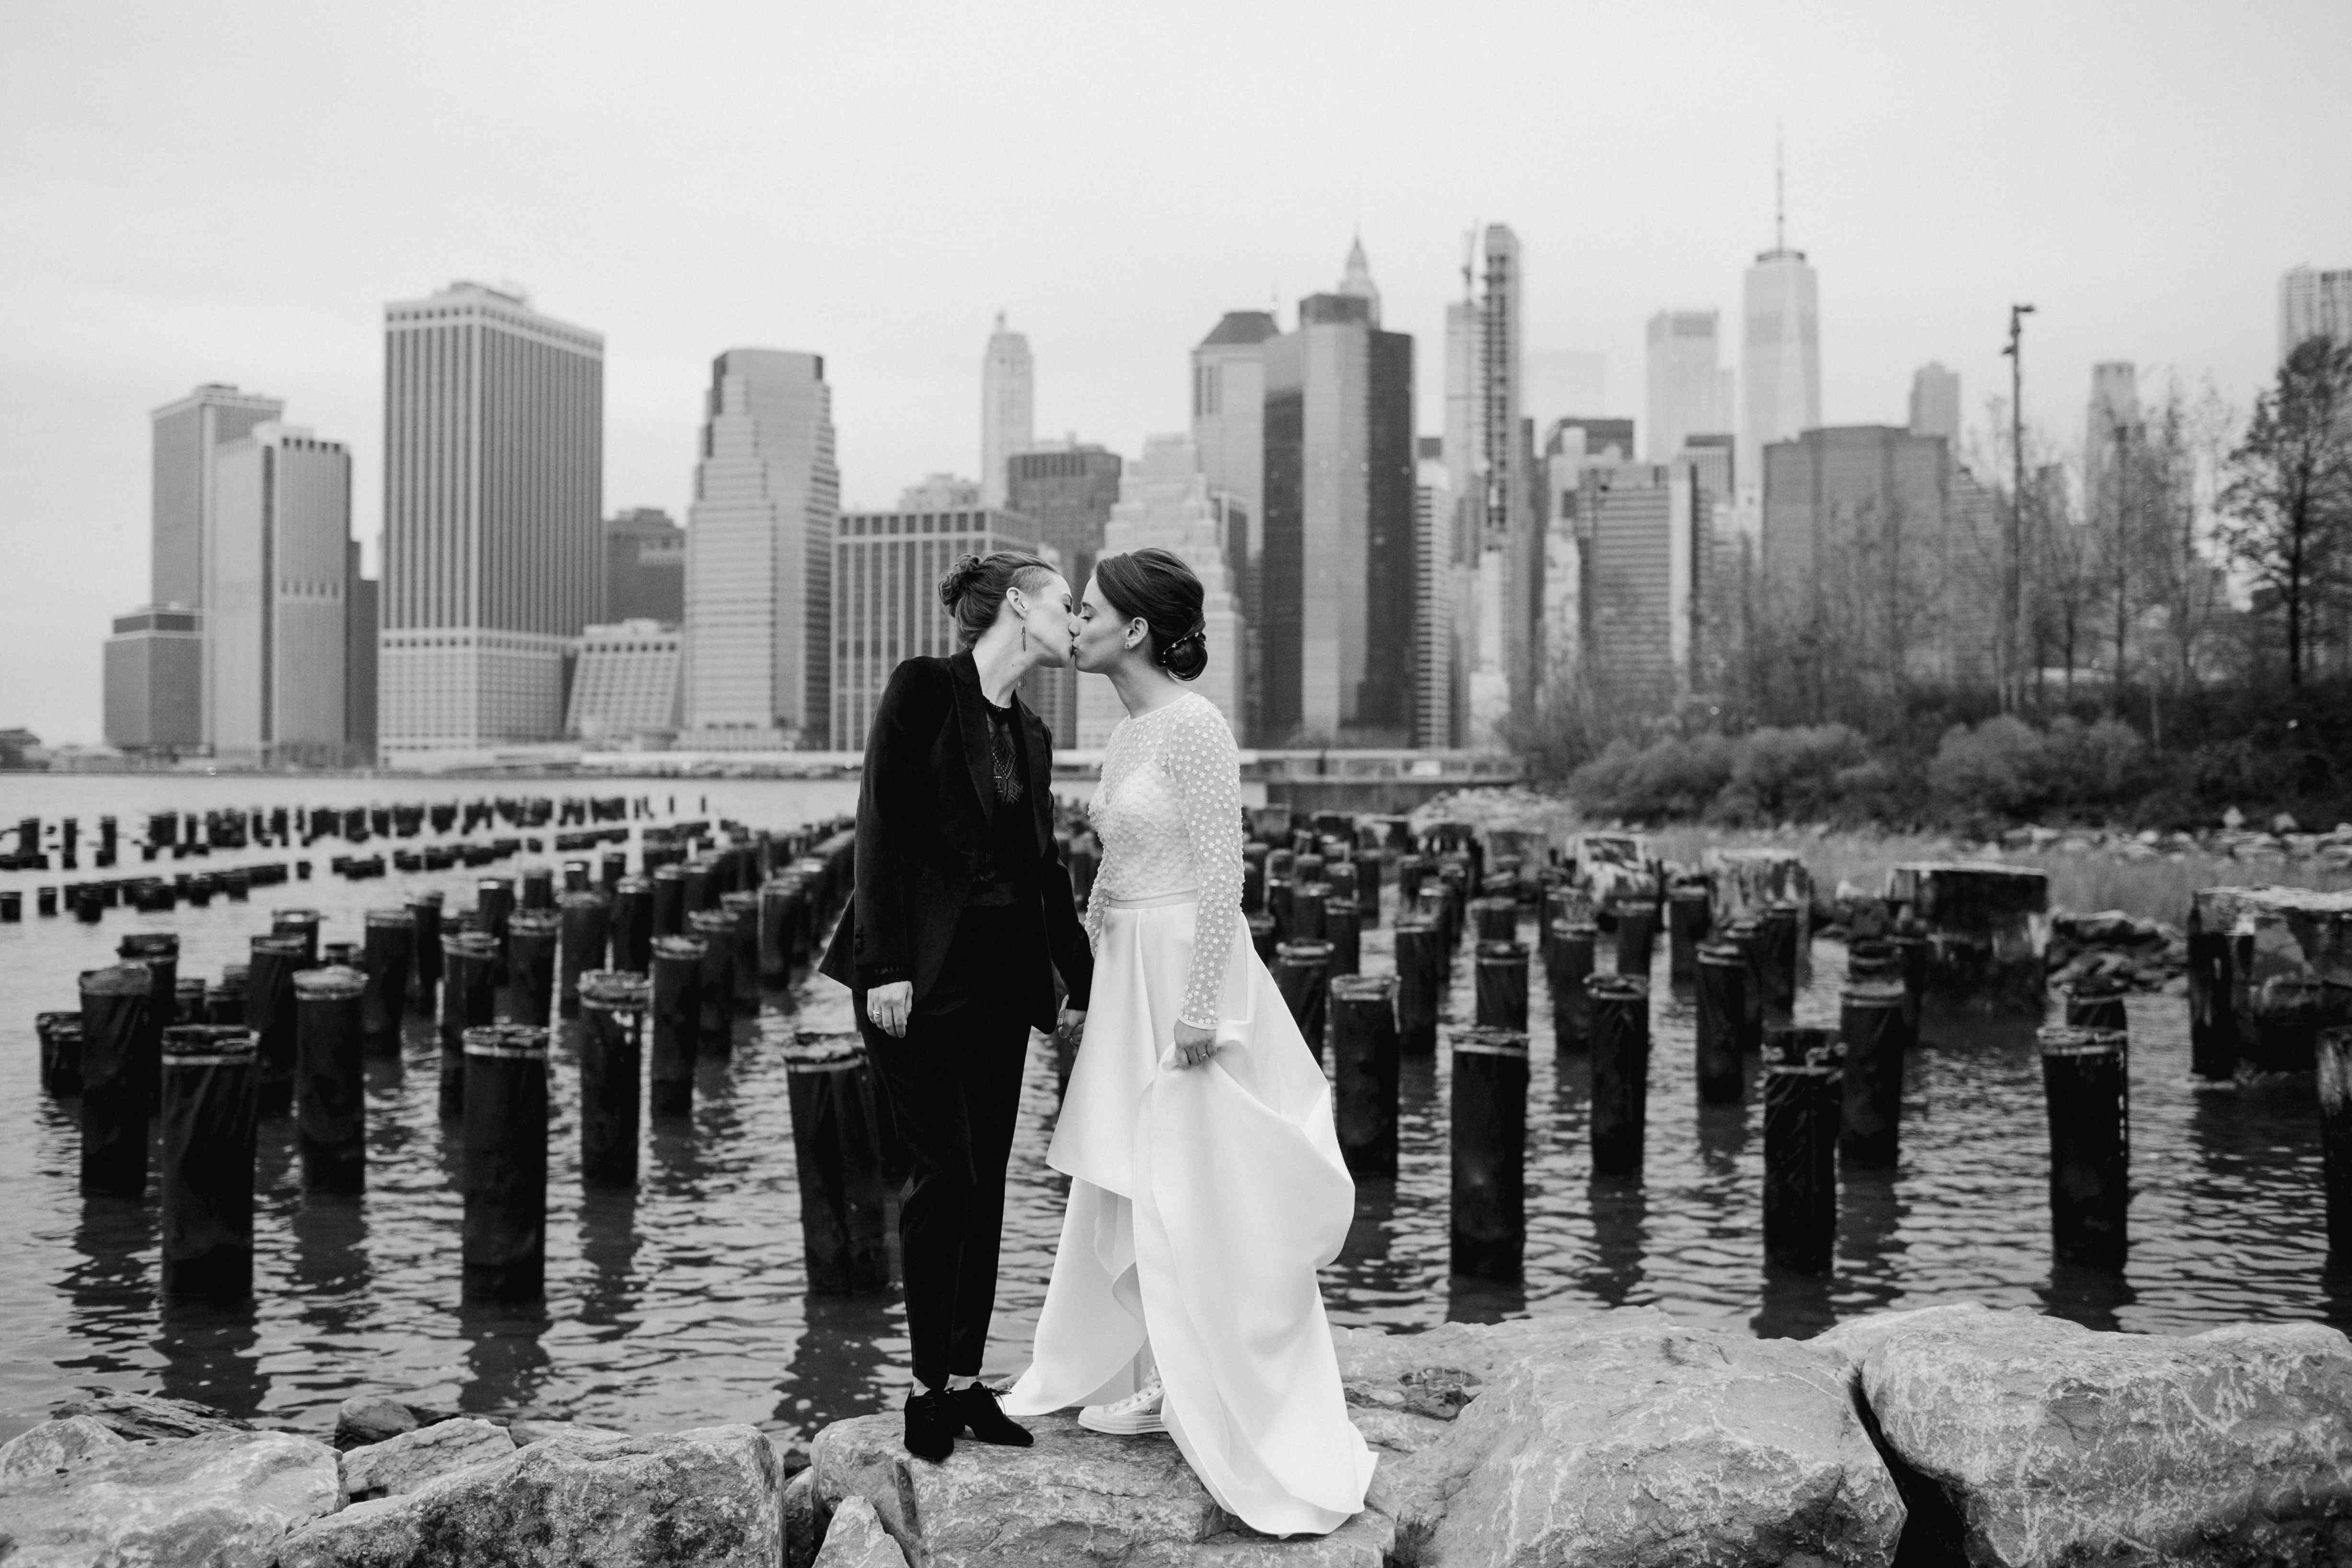 The couple share a kiss along the water